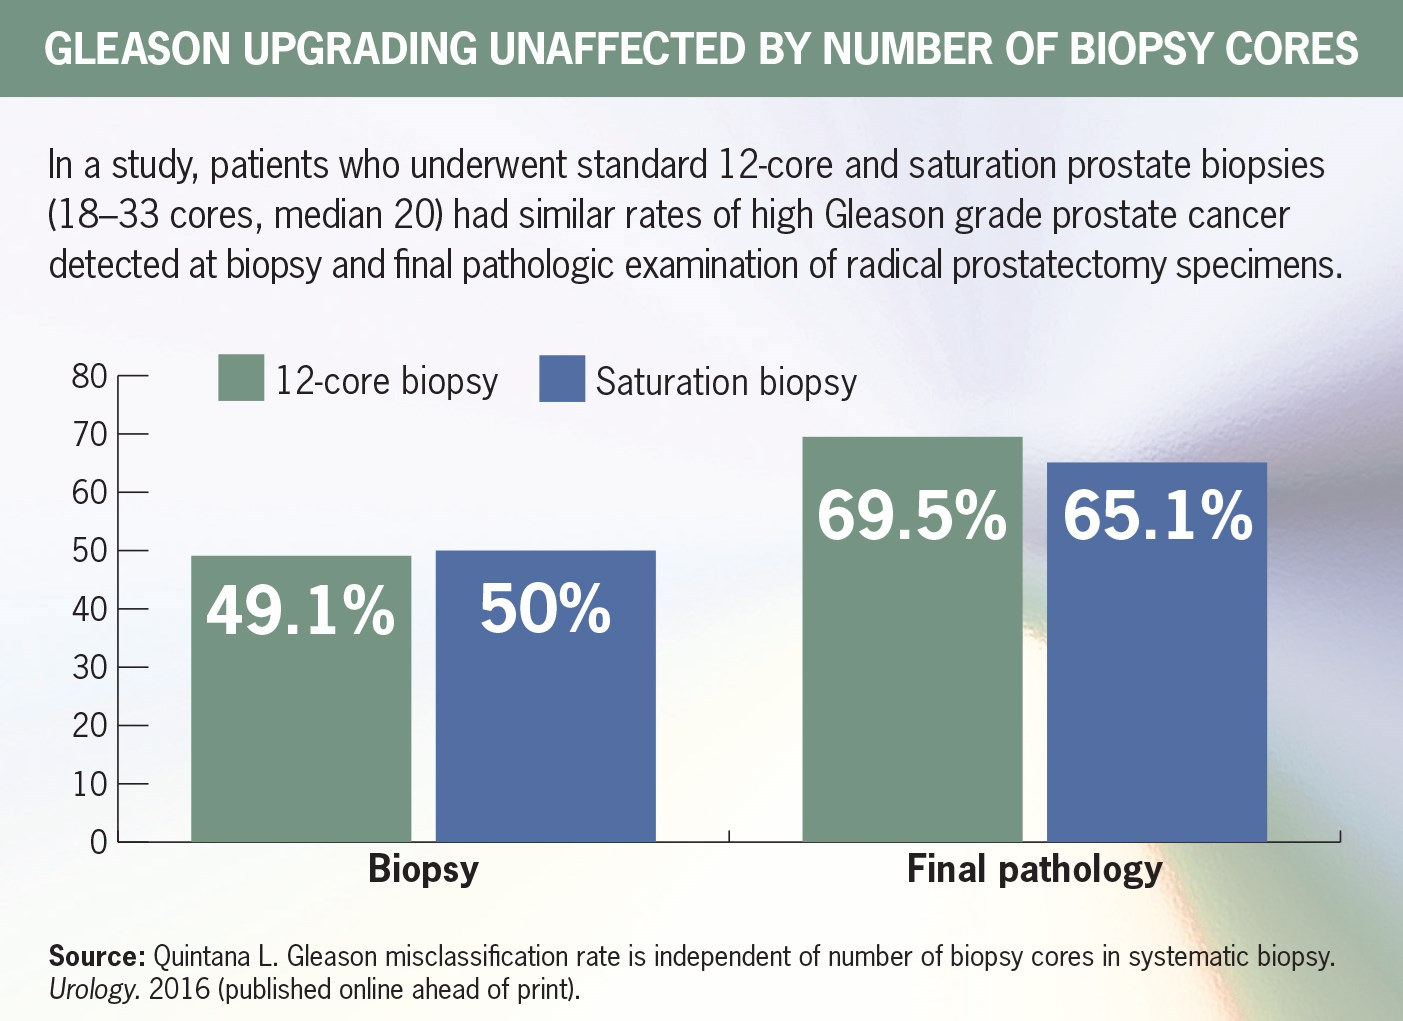 Saturation Prostate Biopsy Not Better